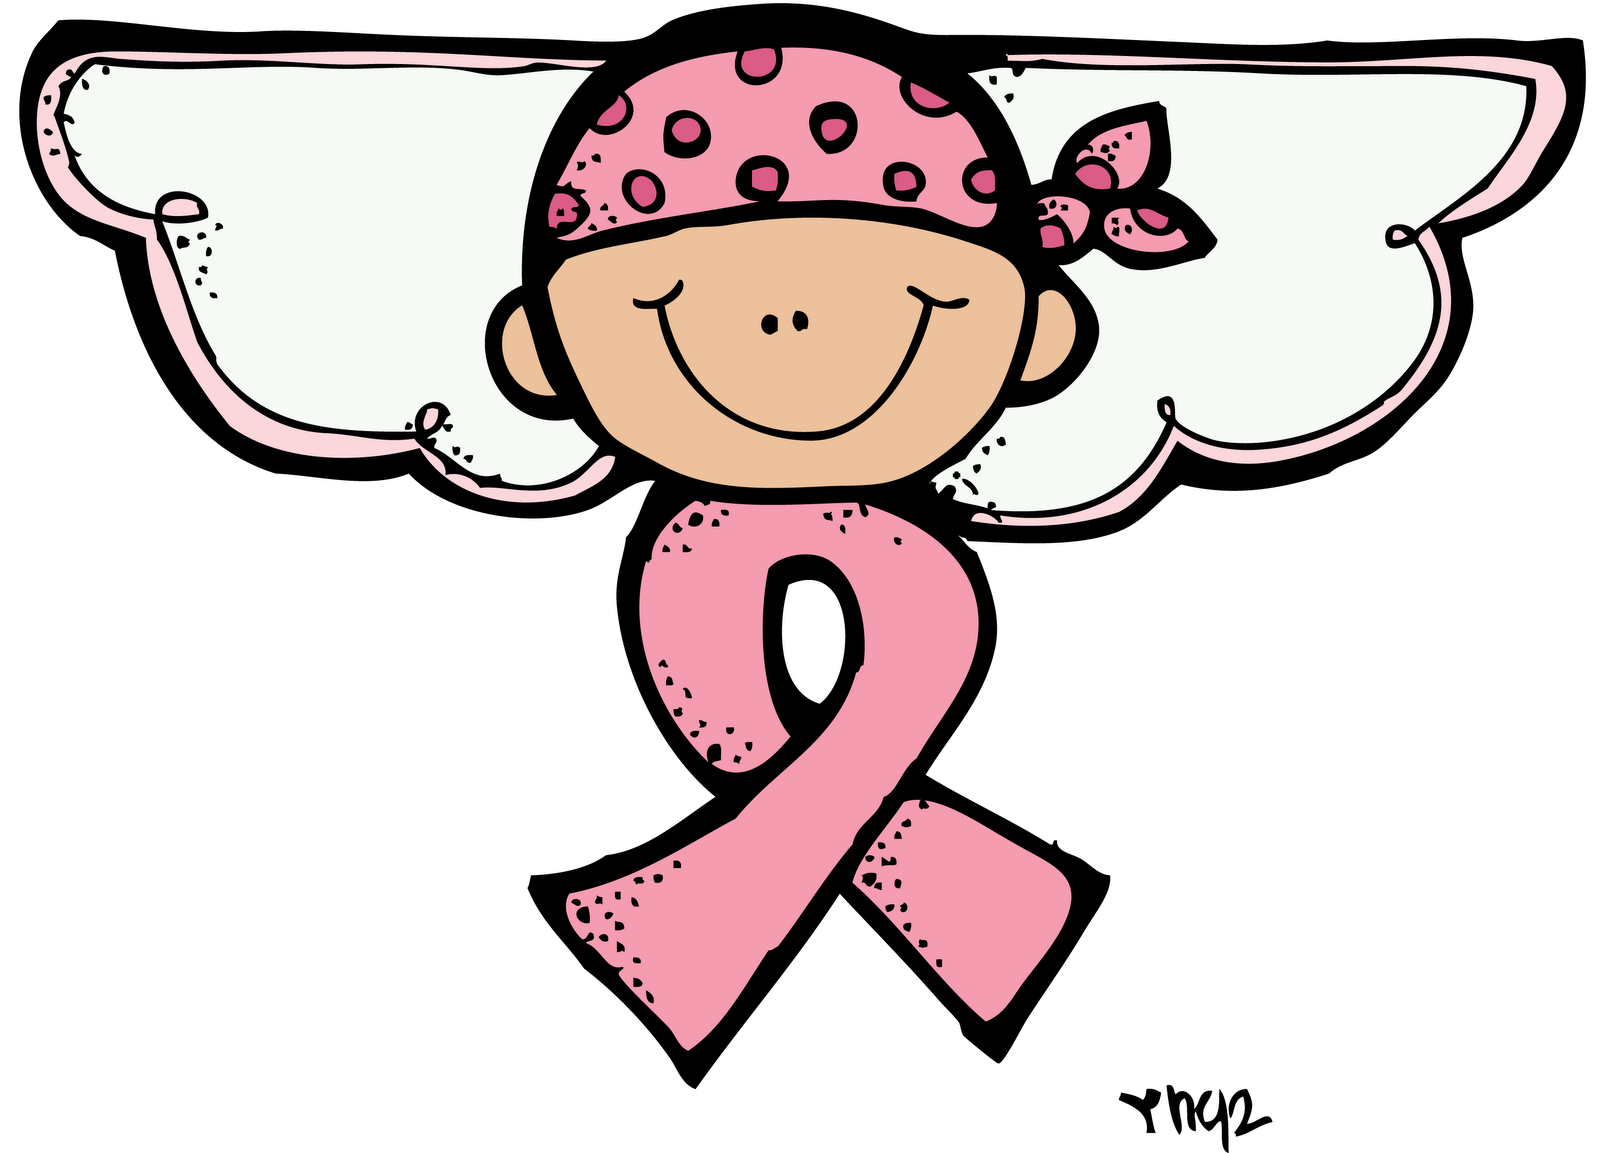 Pinata clipart thud. Melonheadz cancer angels thursday